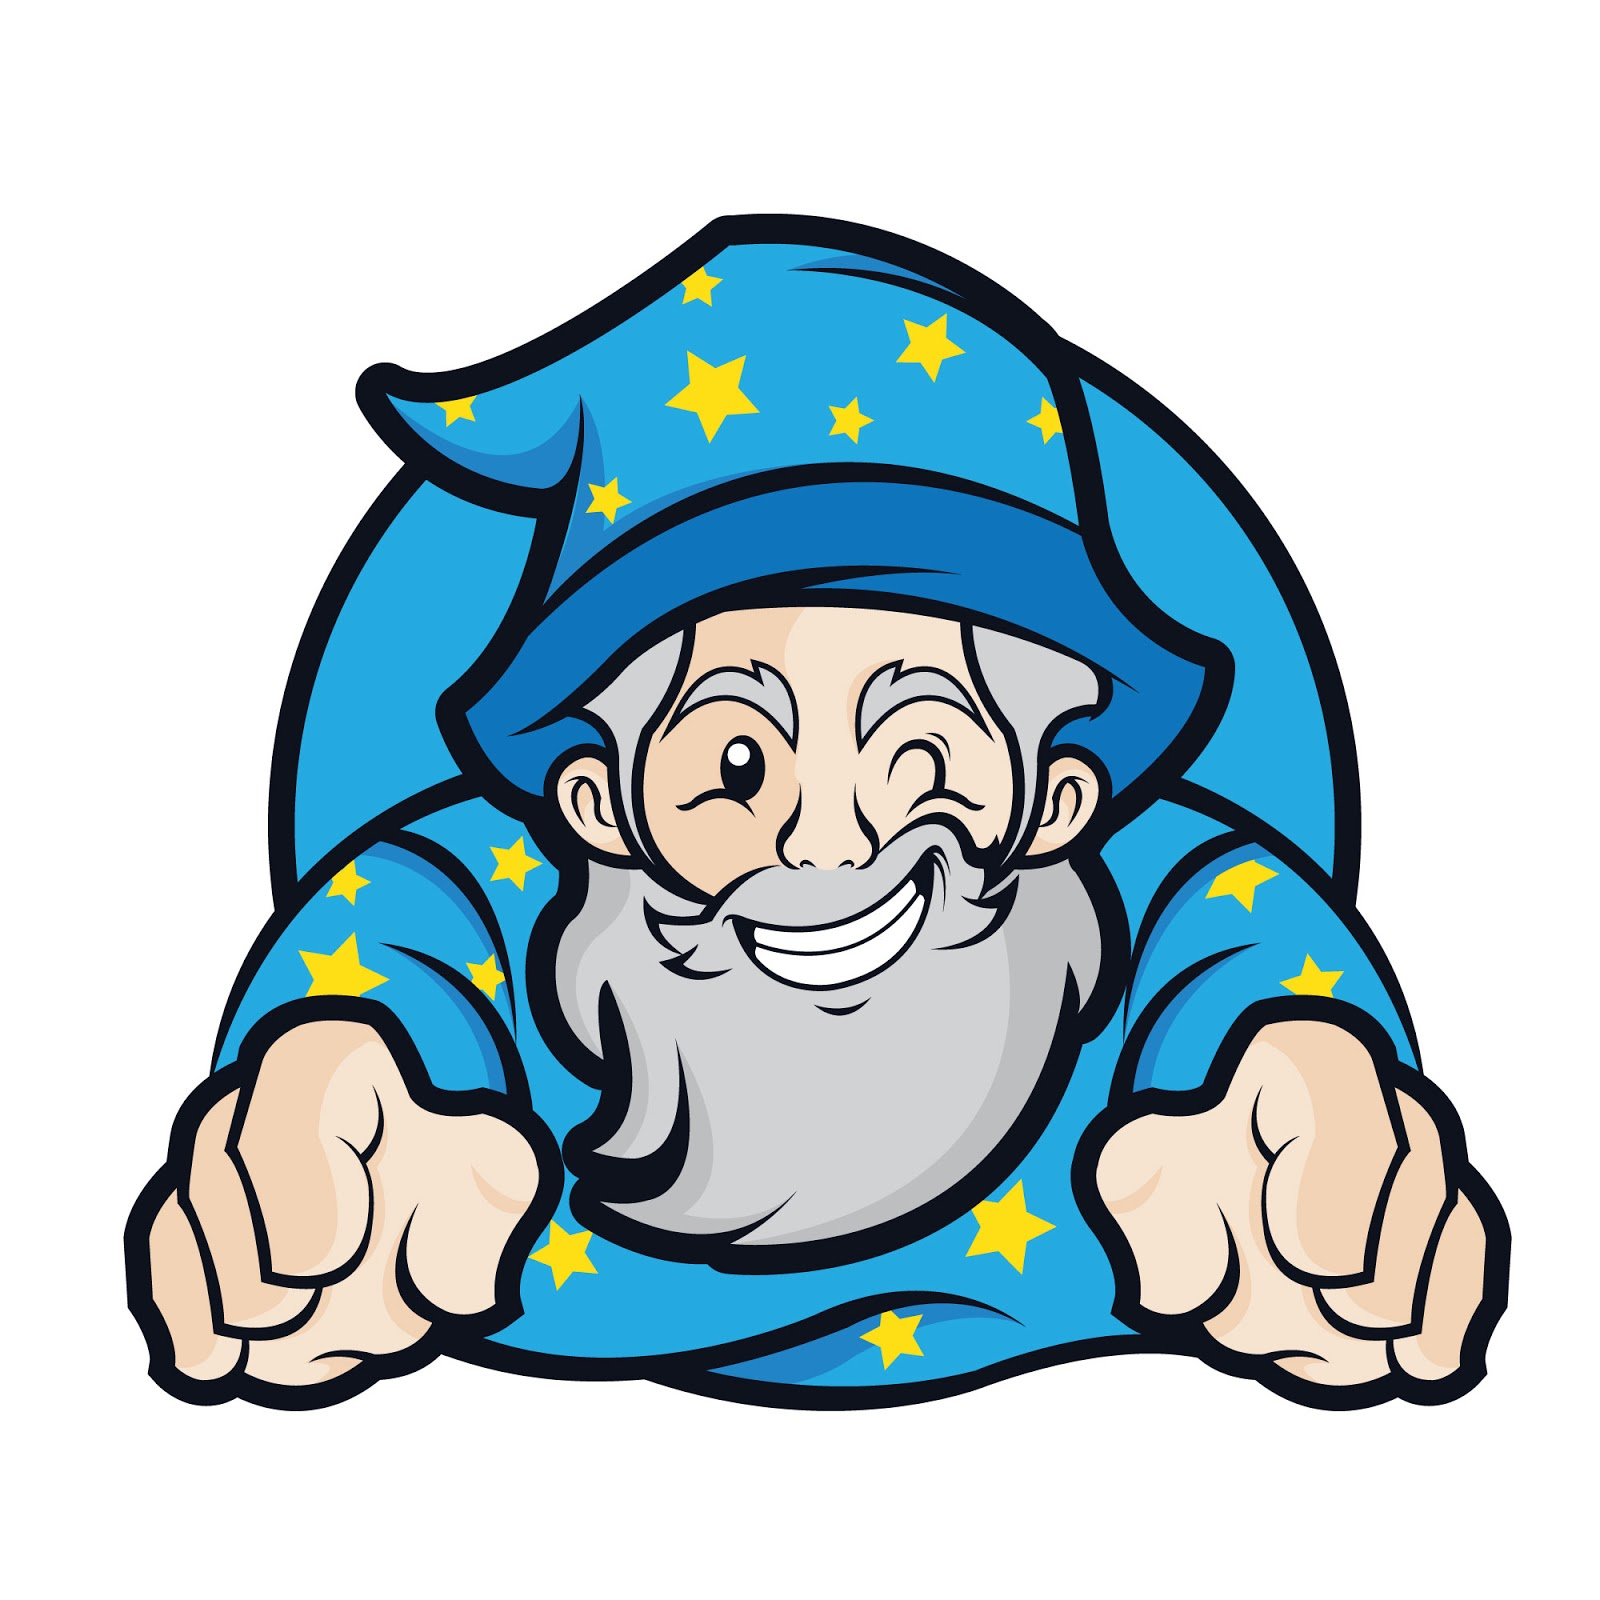 Wizard Sports Logo Free Download Vector CDR, AI, EPS and PNG Formats